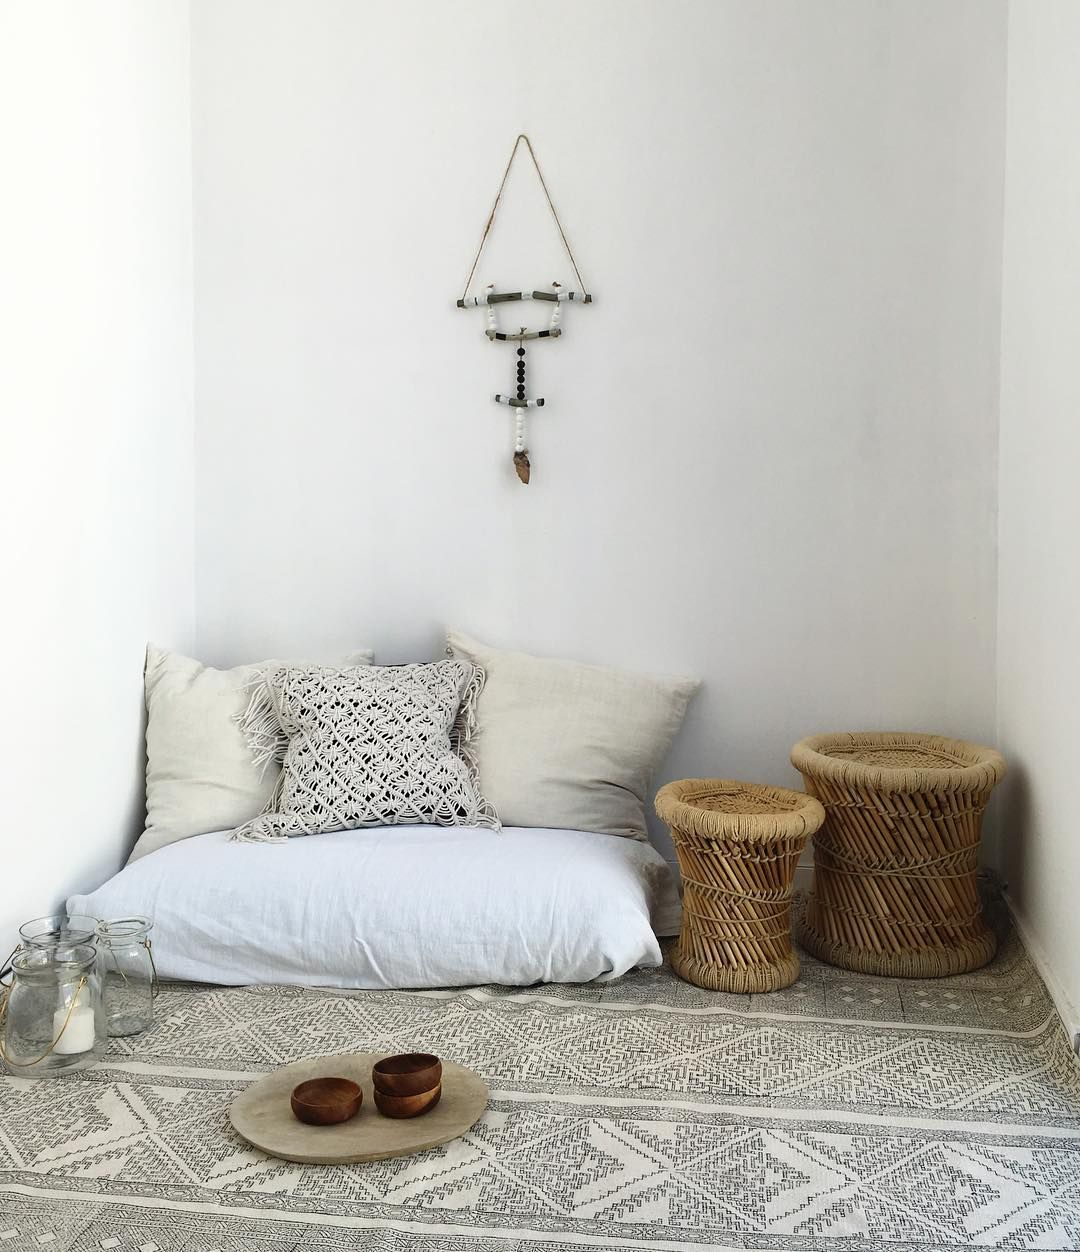 Pin On Boho Style For The Home Indoors Out With A Touch Of